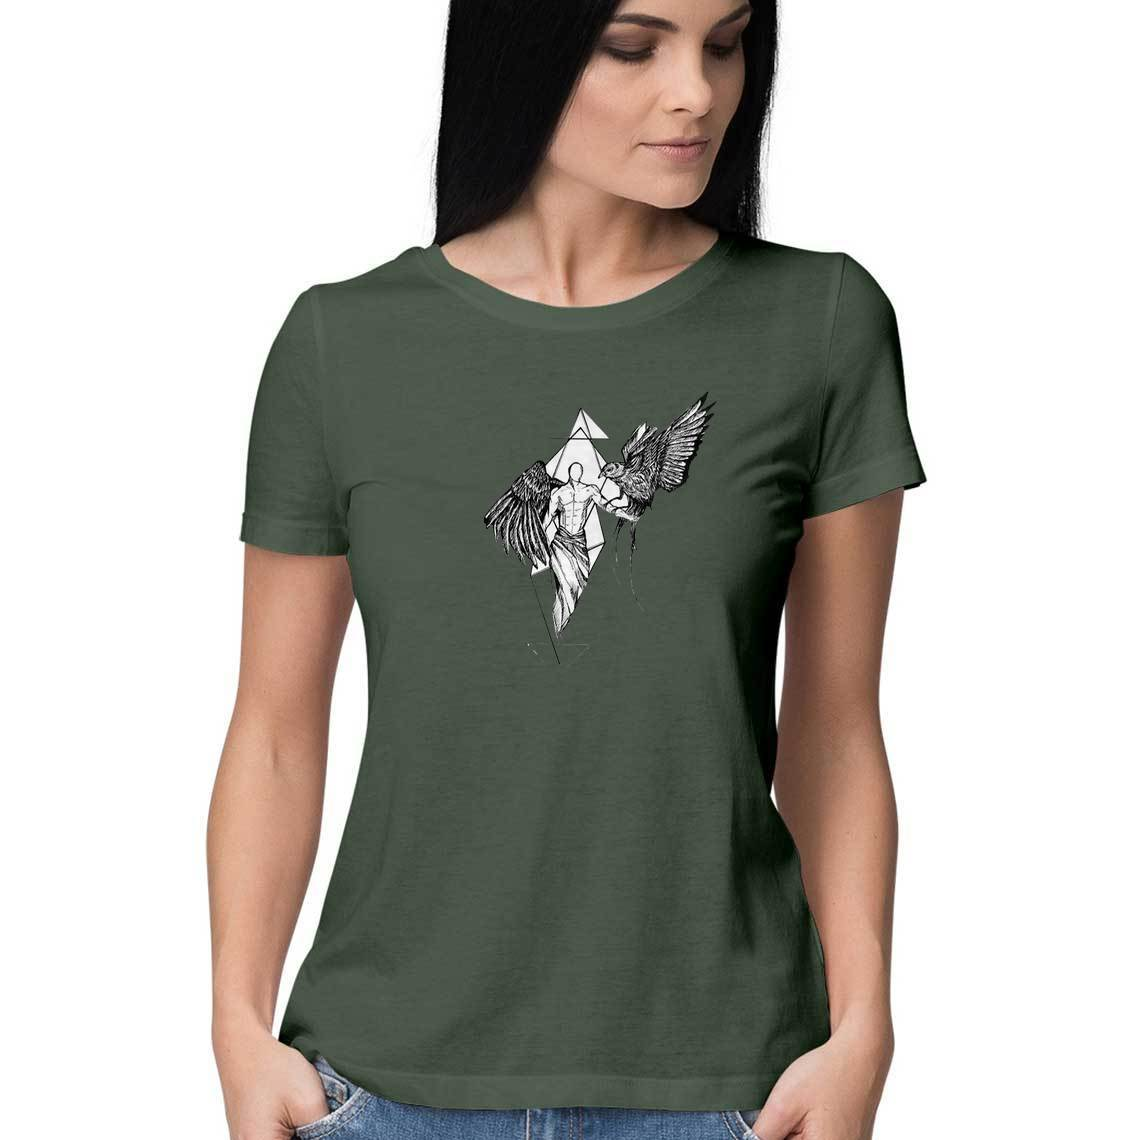 ArchAngel women's Half sleeves T shirt -Anushua Chakraborty - 21 AD